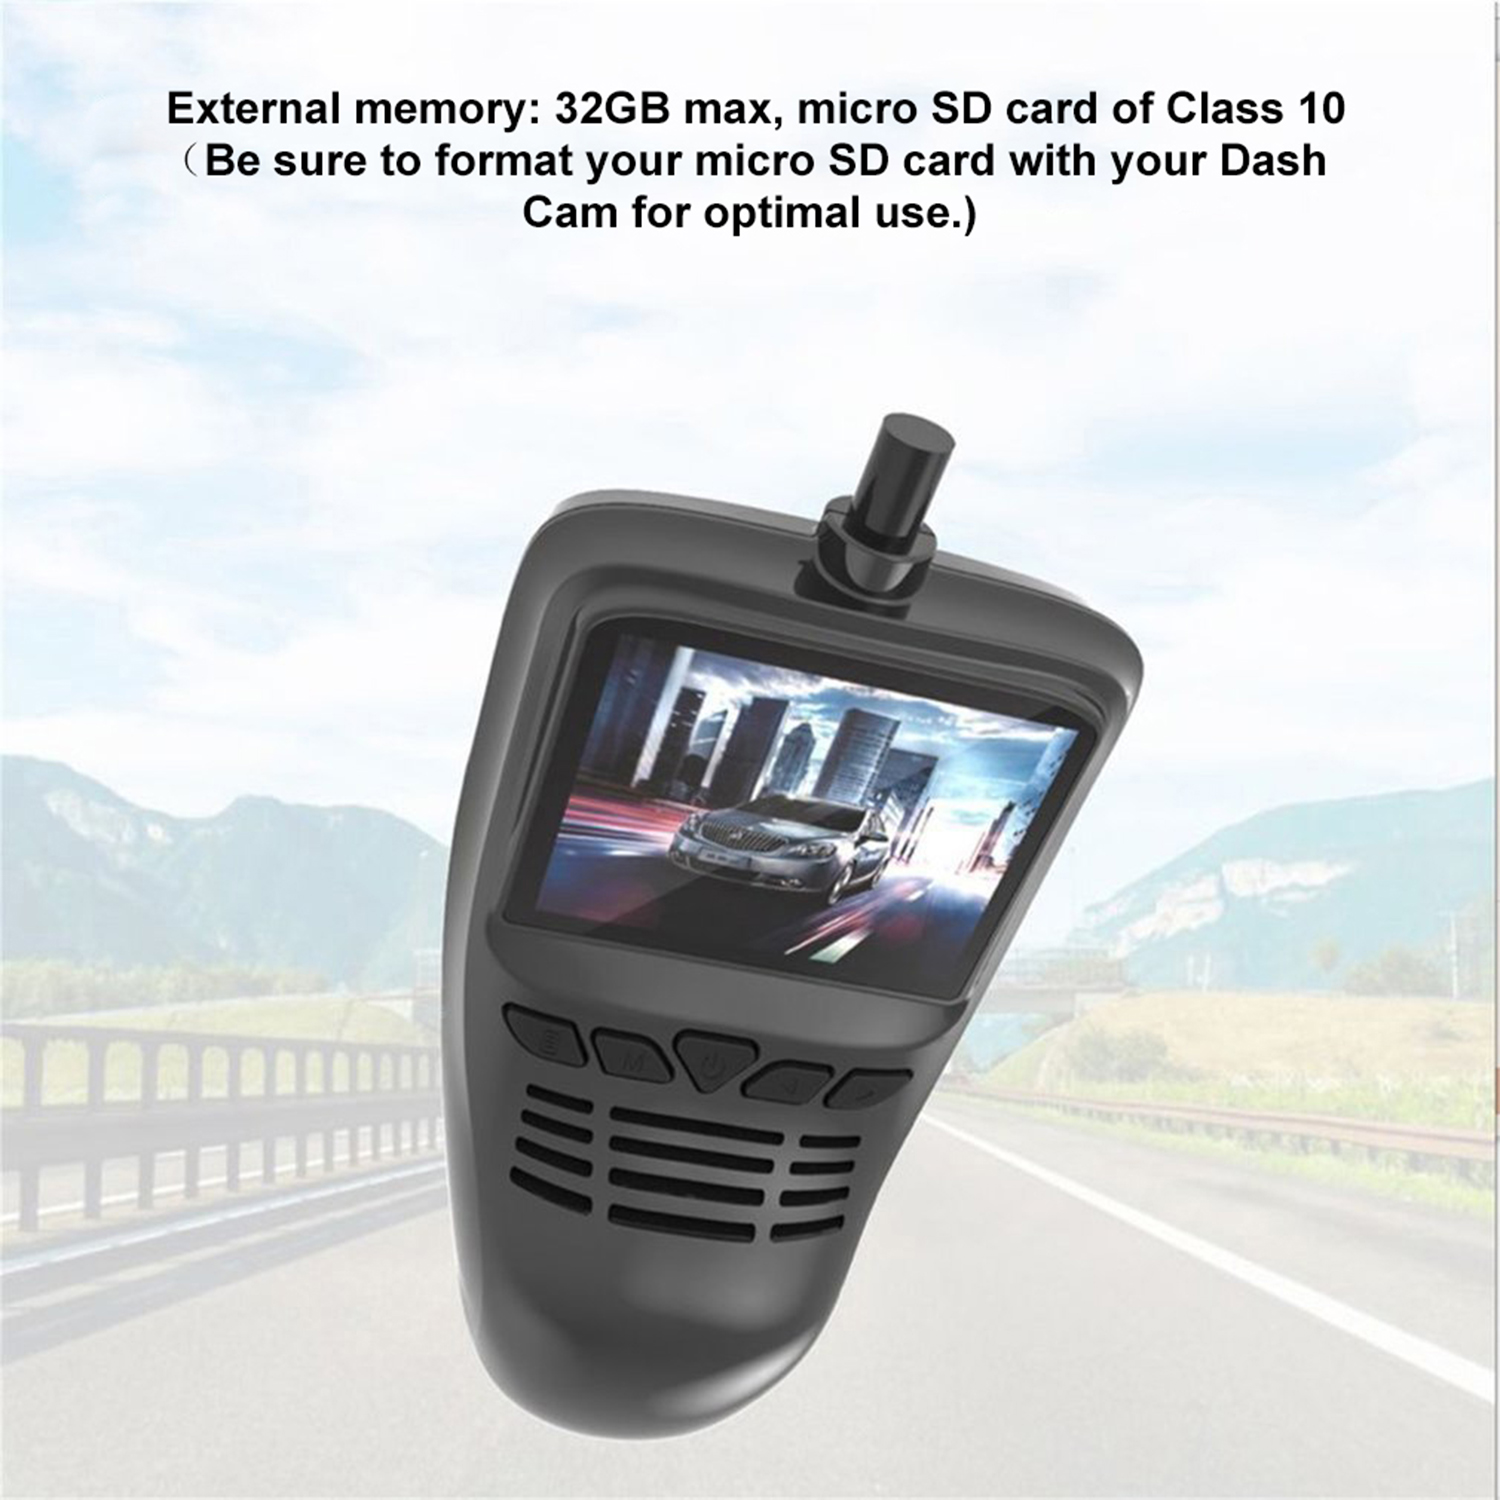 Image 4 - new Small Eye Dash Cam Car DVR Recorder Camera with Wifi Full HD 1080p Wide Angle Lens G Sensor Night Vision Dash Cam-in DVR/Dash Camera from Automobiles & Motorcycles